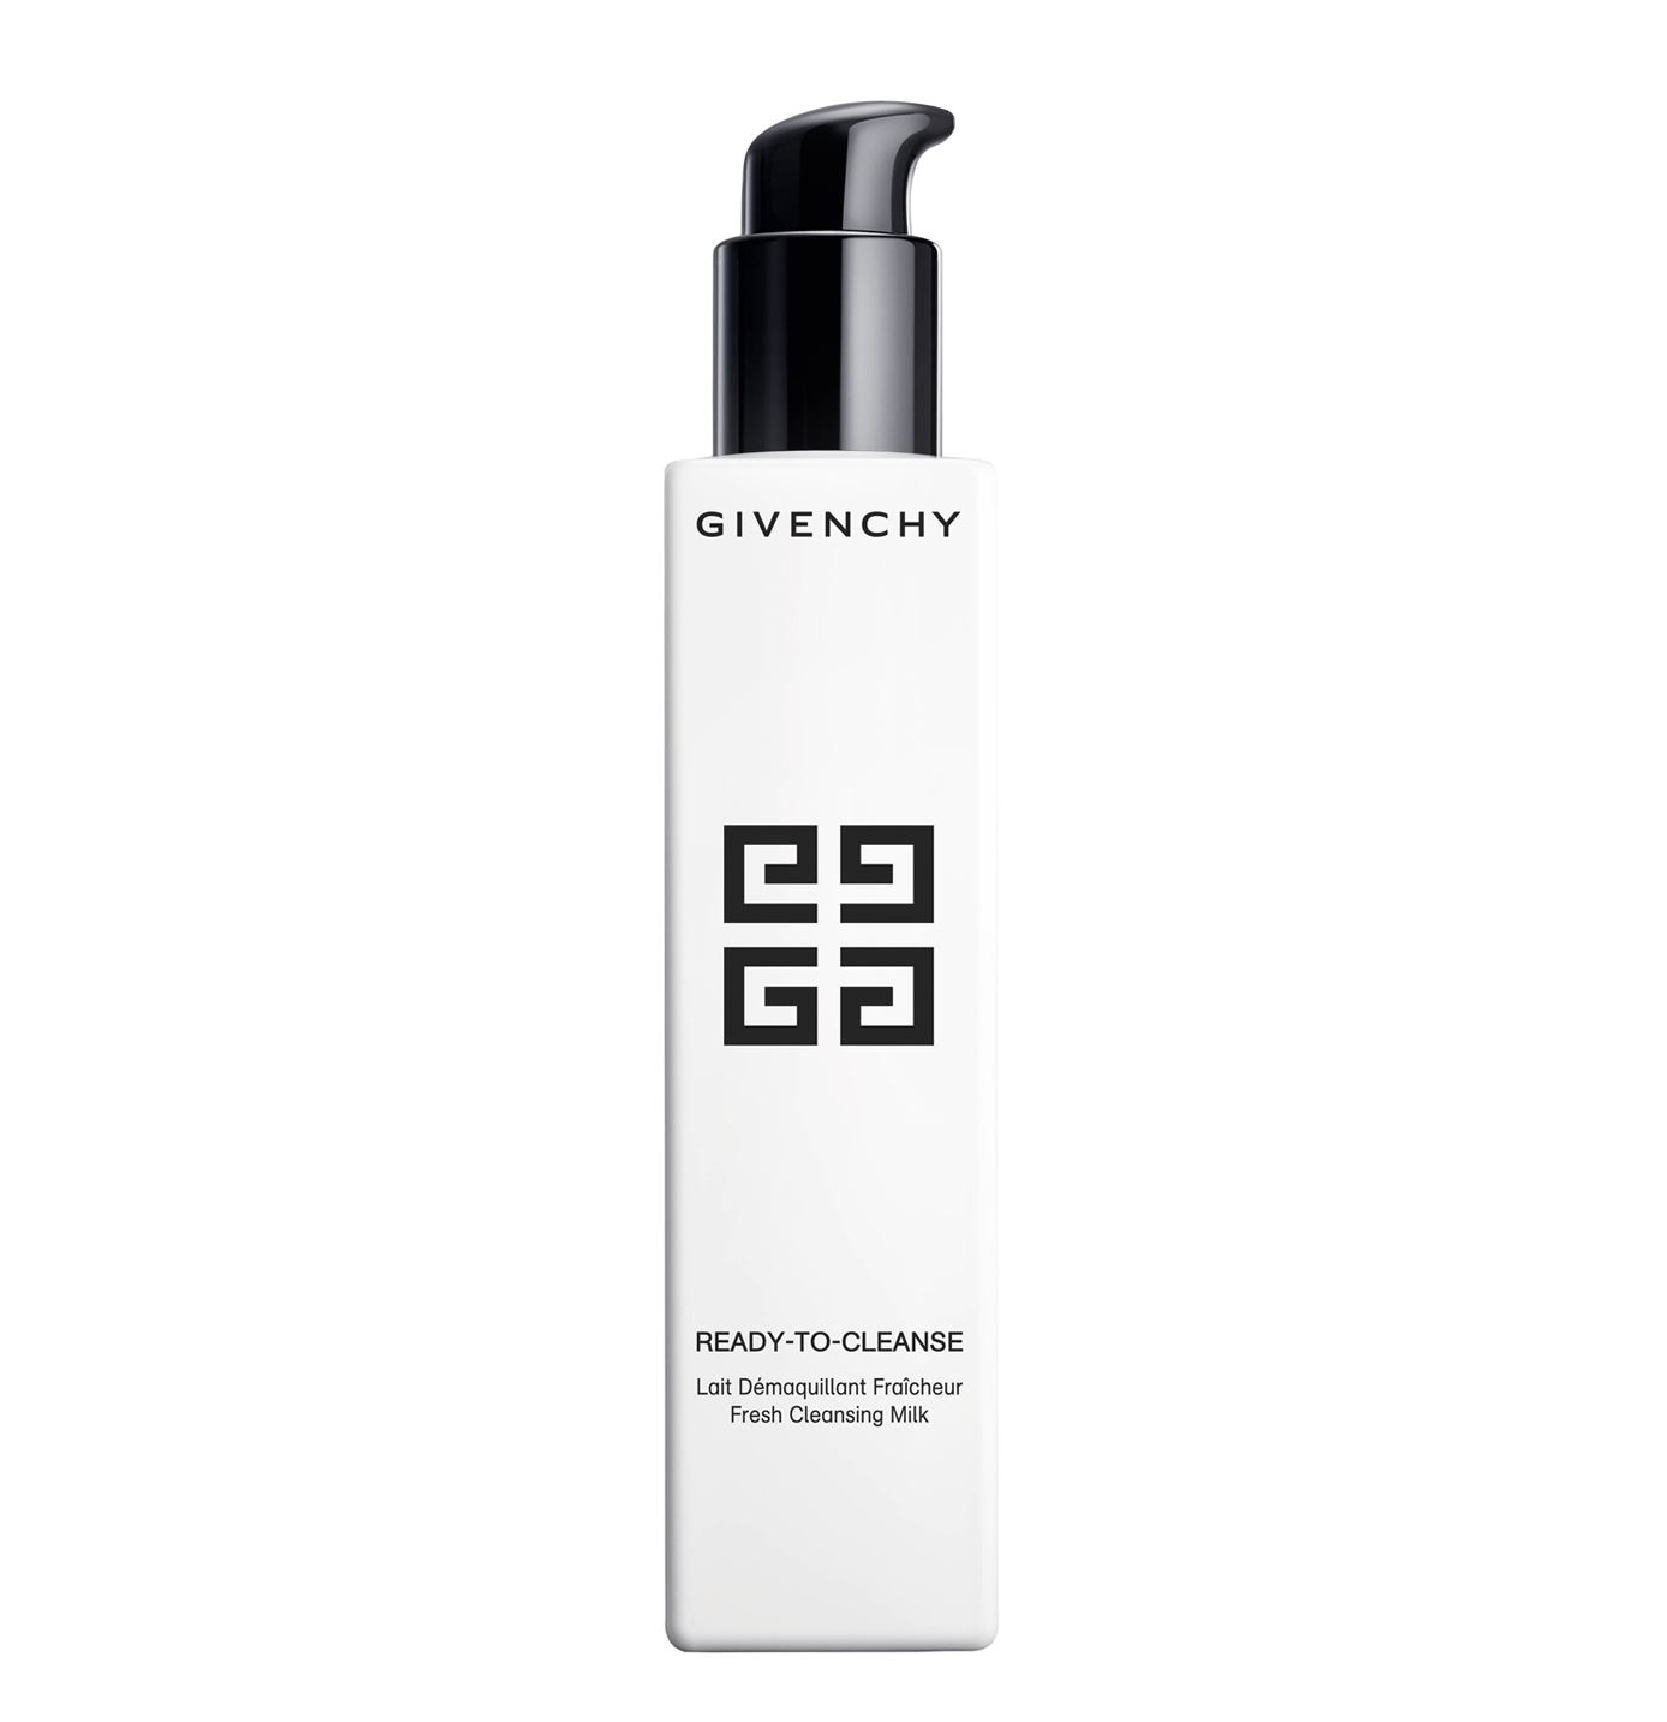 Givenchy - Ready-To-Cleanse Fresh Cleansing Milk